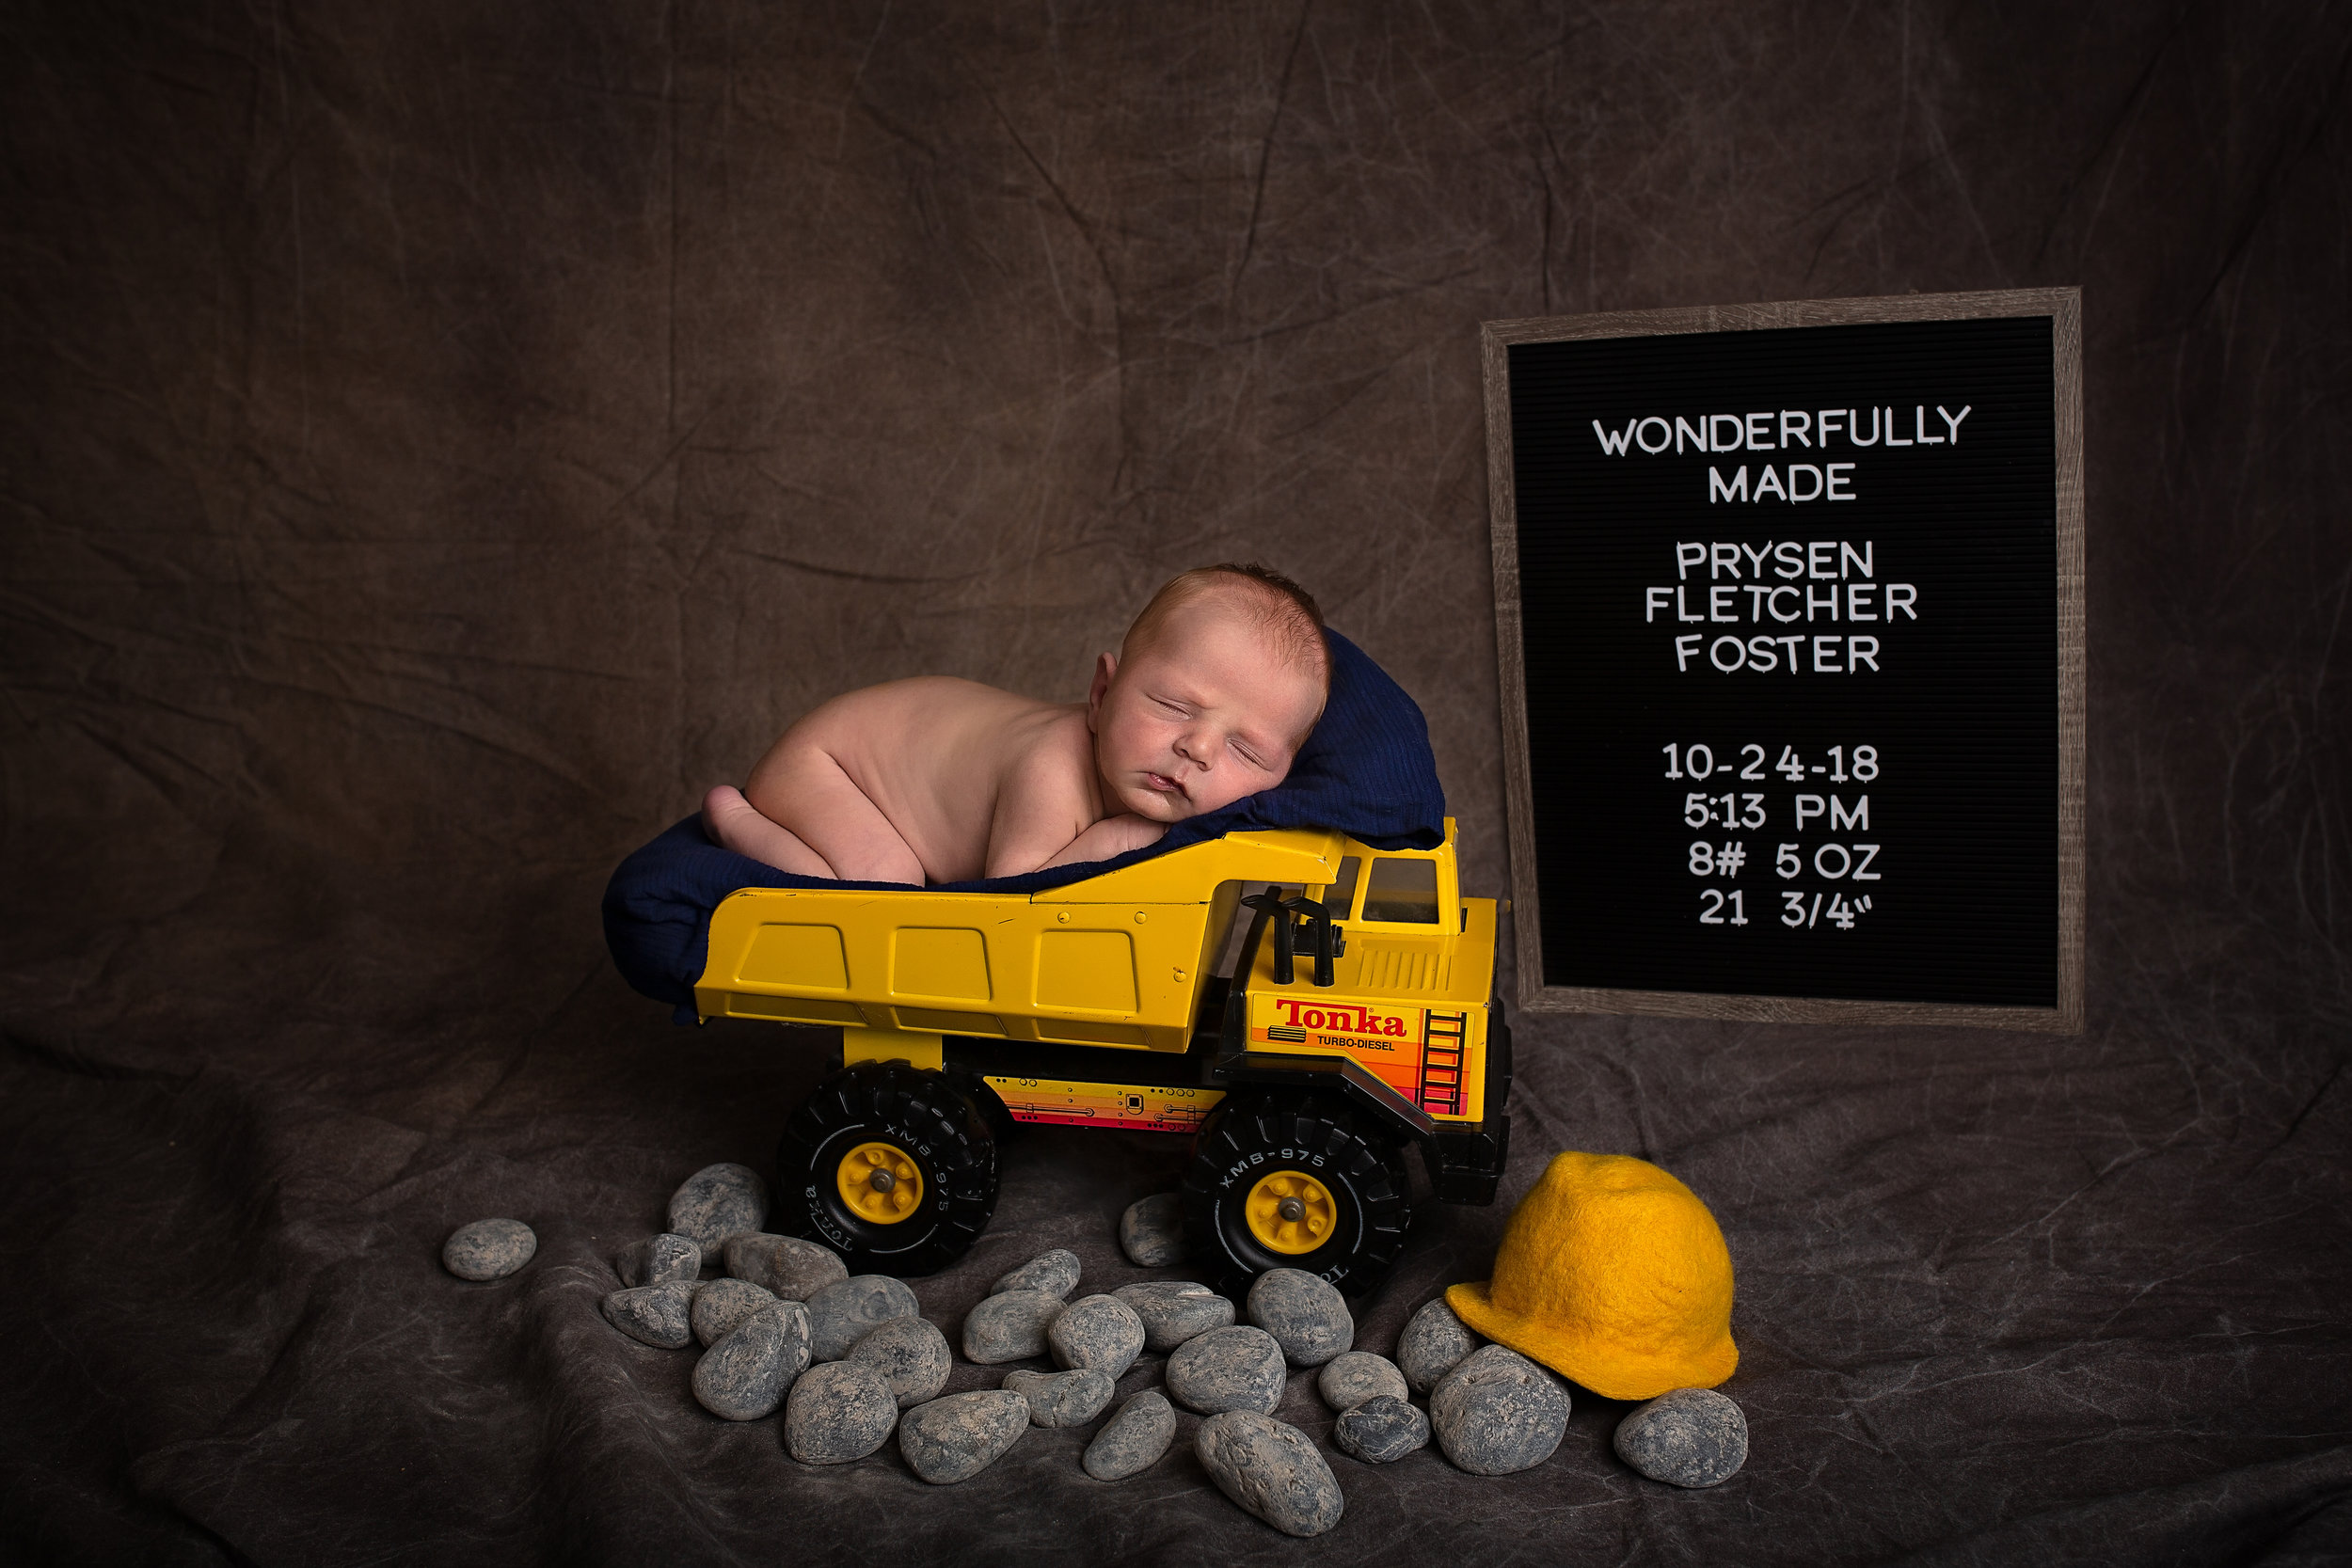 18_11_04 Melody Foster Newborn Session - Pryson39.jpg